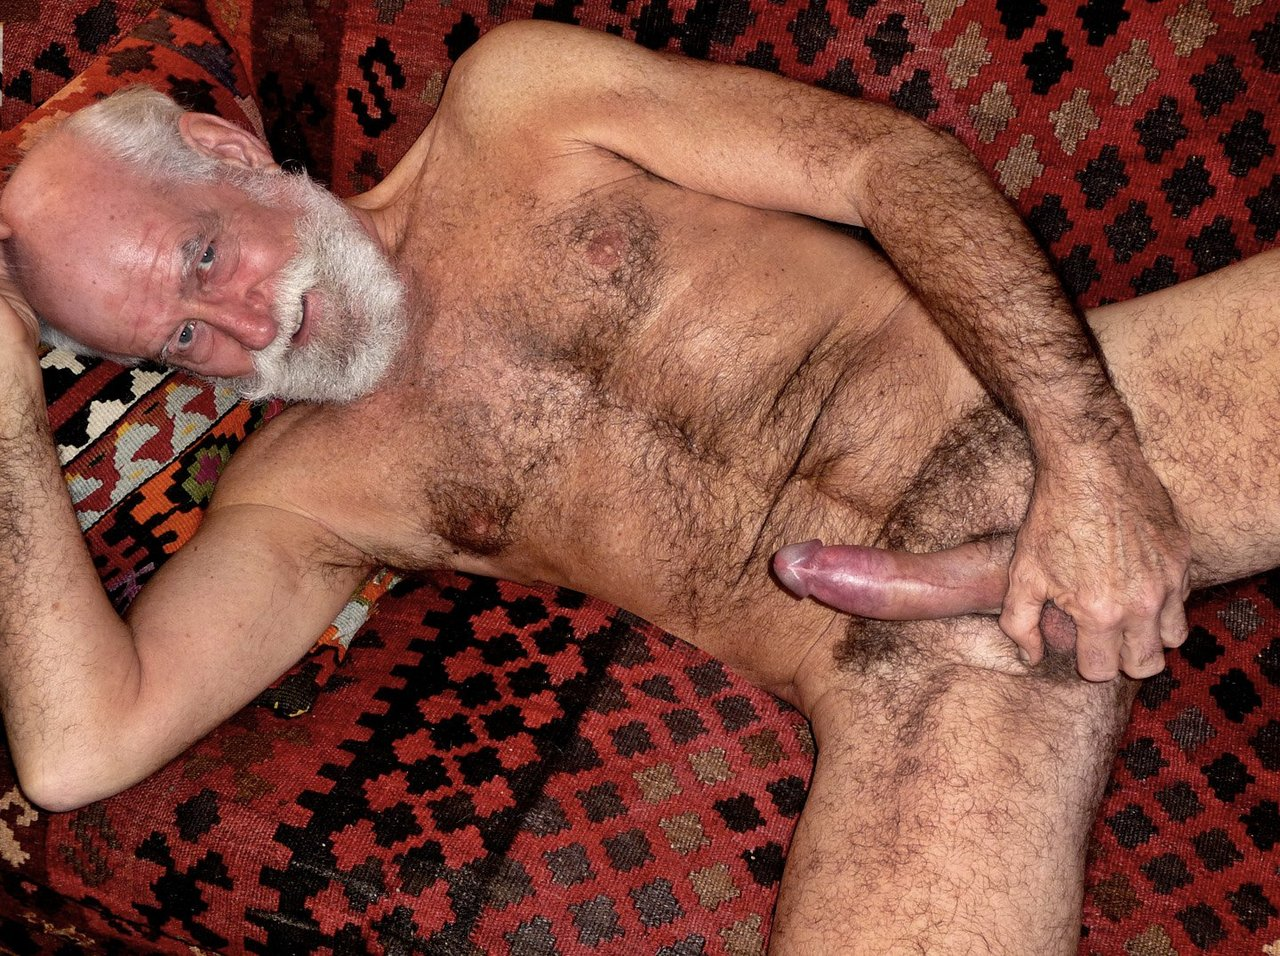 Hot old men nude wallpaper hentai pic